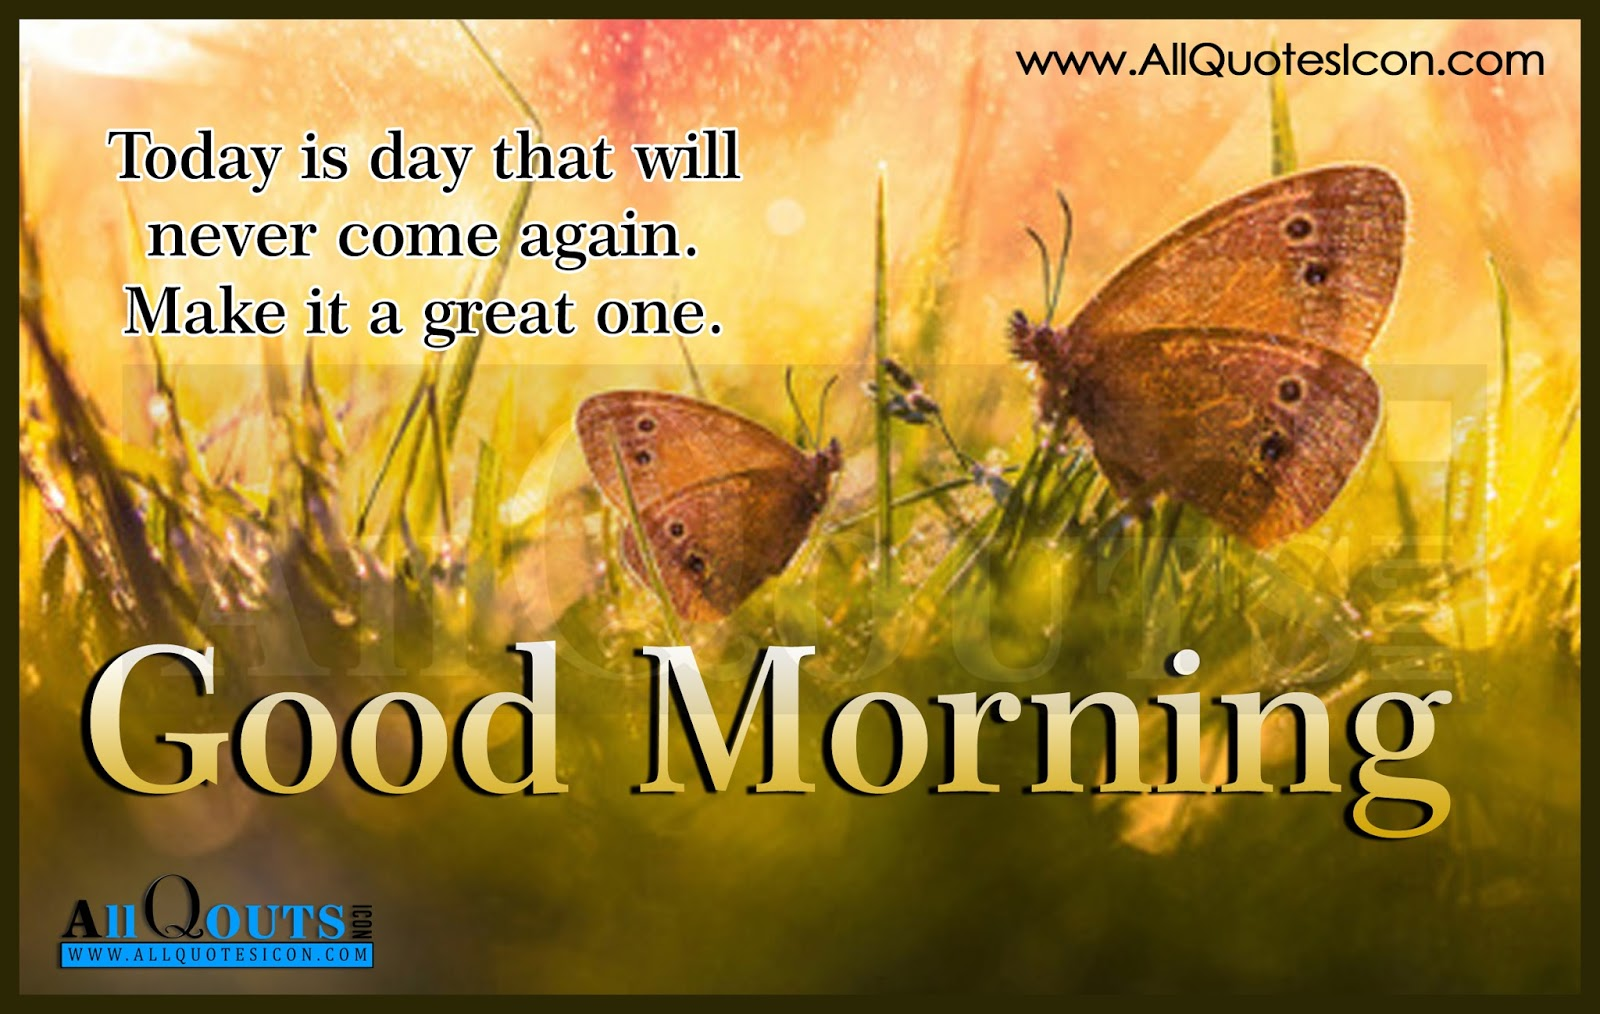 Good morning greetings and wishes in english allquotesicon good morning english quotes images pictures wallpapers photos kristyandbryce Images